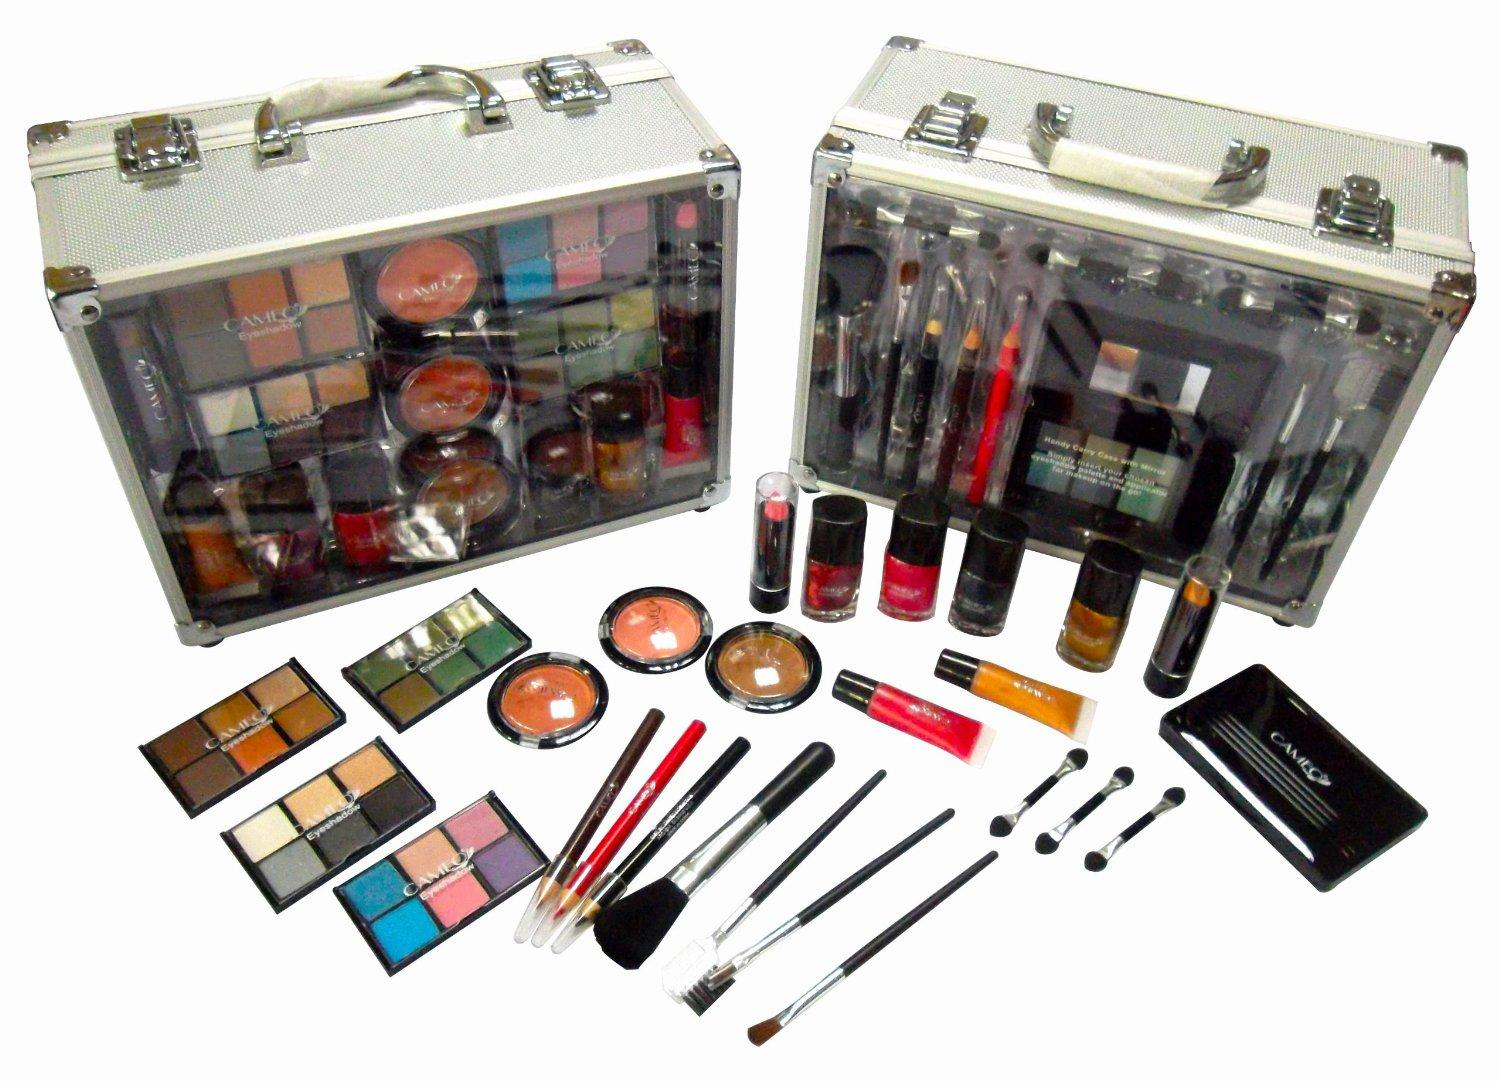 97d552e150 Amazon.com: Jumbl™ Makeup Gift Set Large Clear Case Brush Set ...